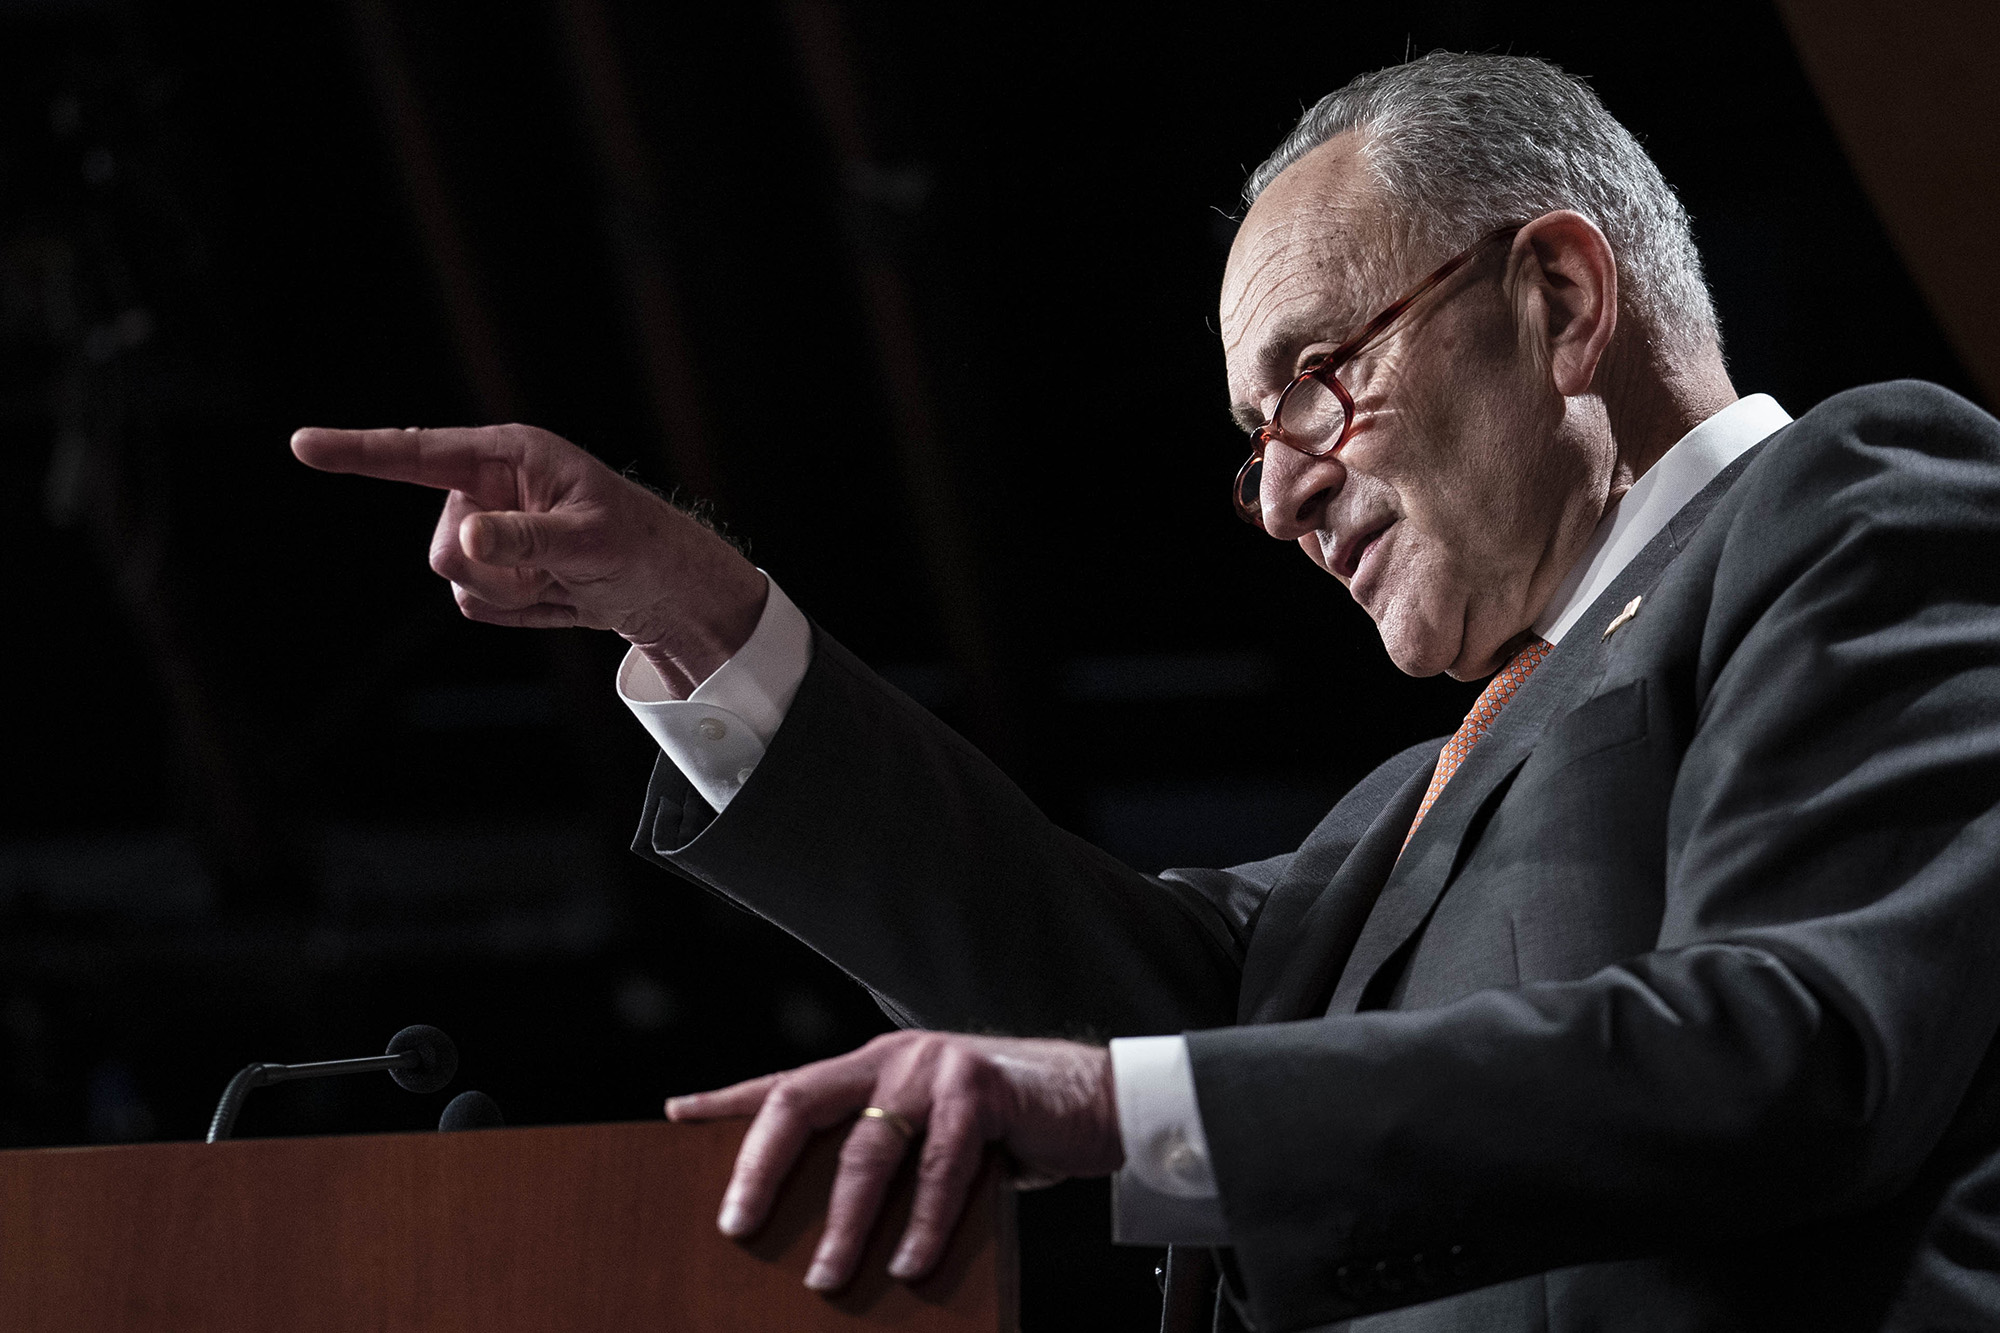 Senate Minority Leader Chuck Schumer, speaks during a news conference at the U.S. Capitol in Washington DC, on Tuesday, December 8.